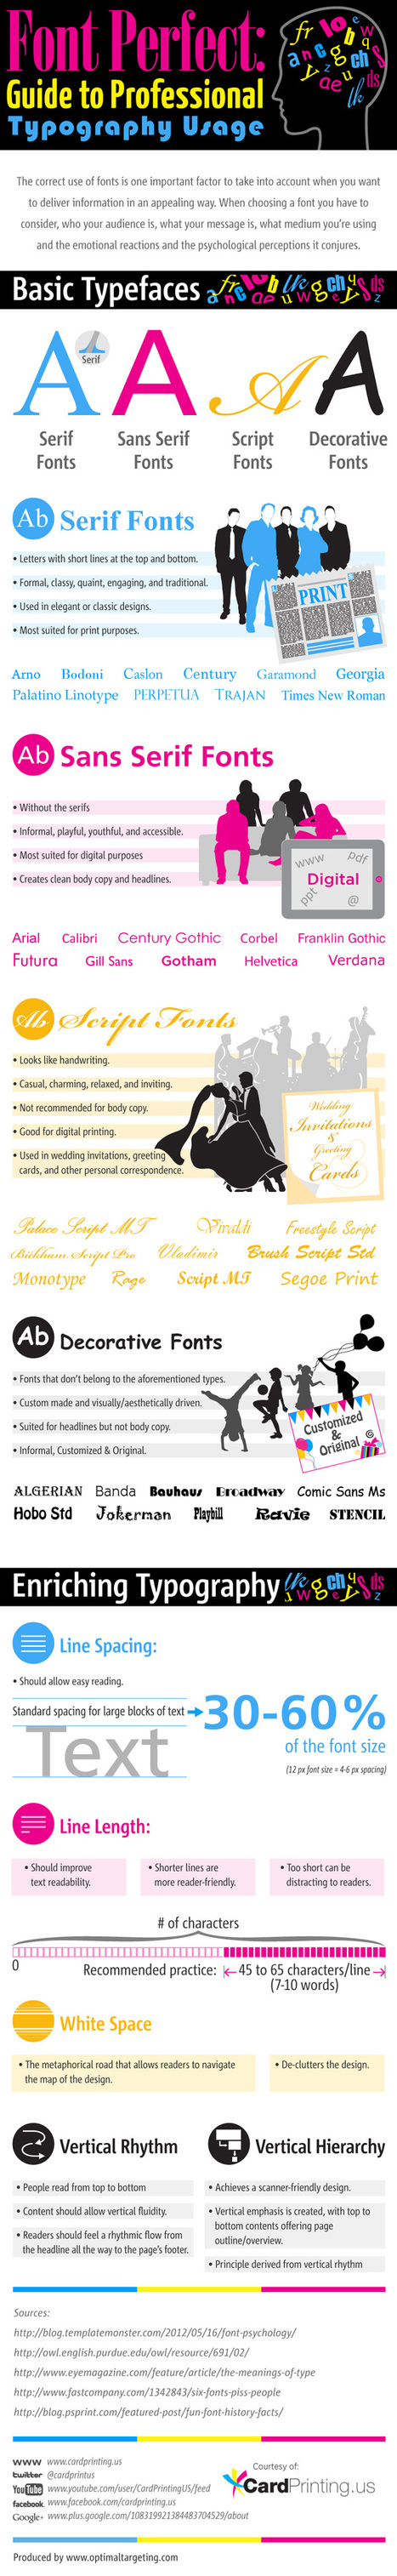 Guide to Professional Typography Usage [Infographic] - Cardprinting.us via Infographic Journal | Graphic Design | Scoop.it